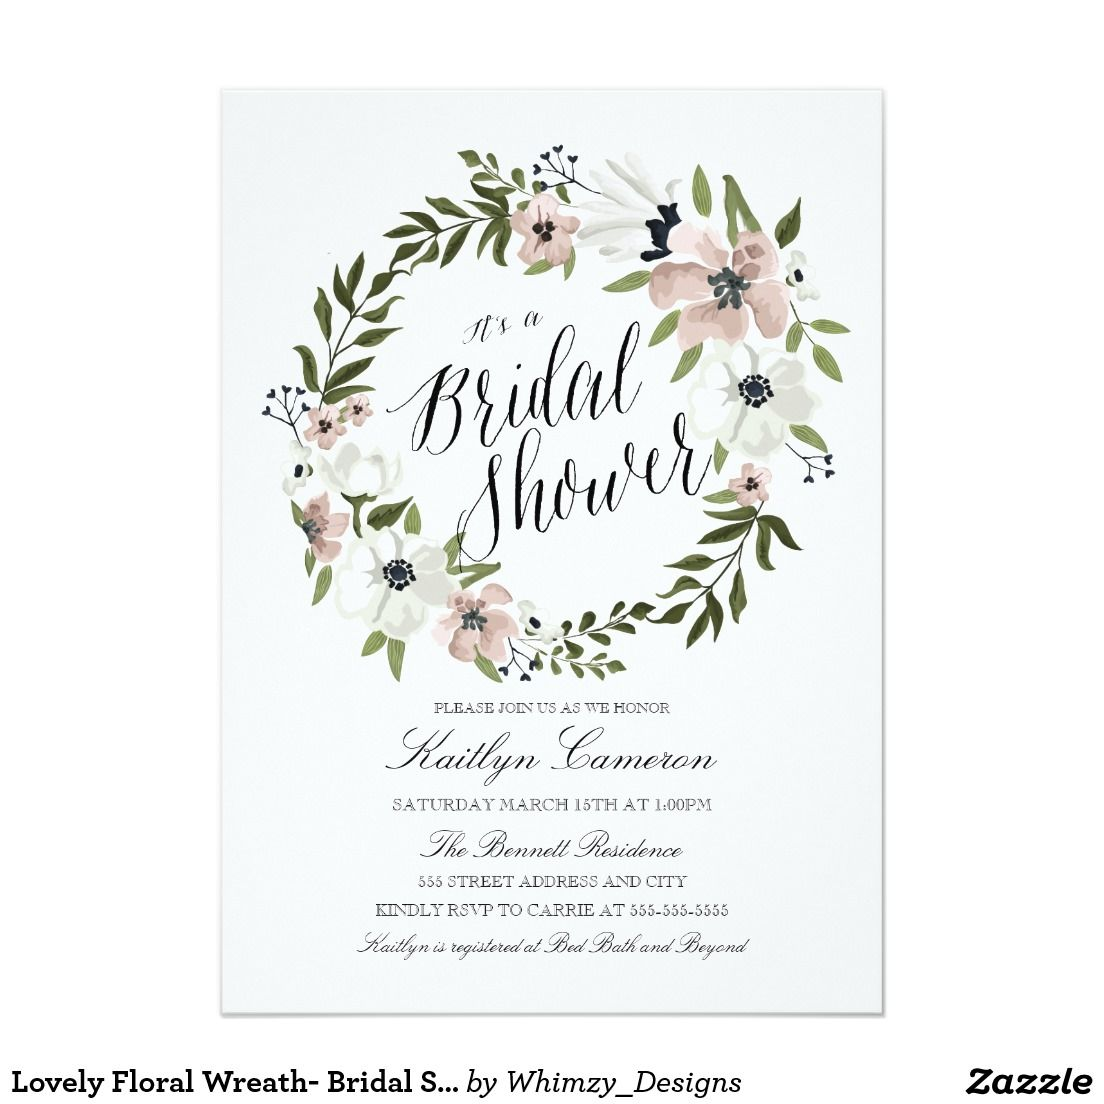 Lovely Floral Wreath Bridal Shower Invitation Floral Wreath